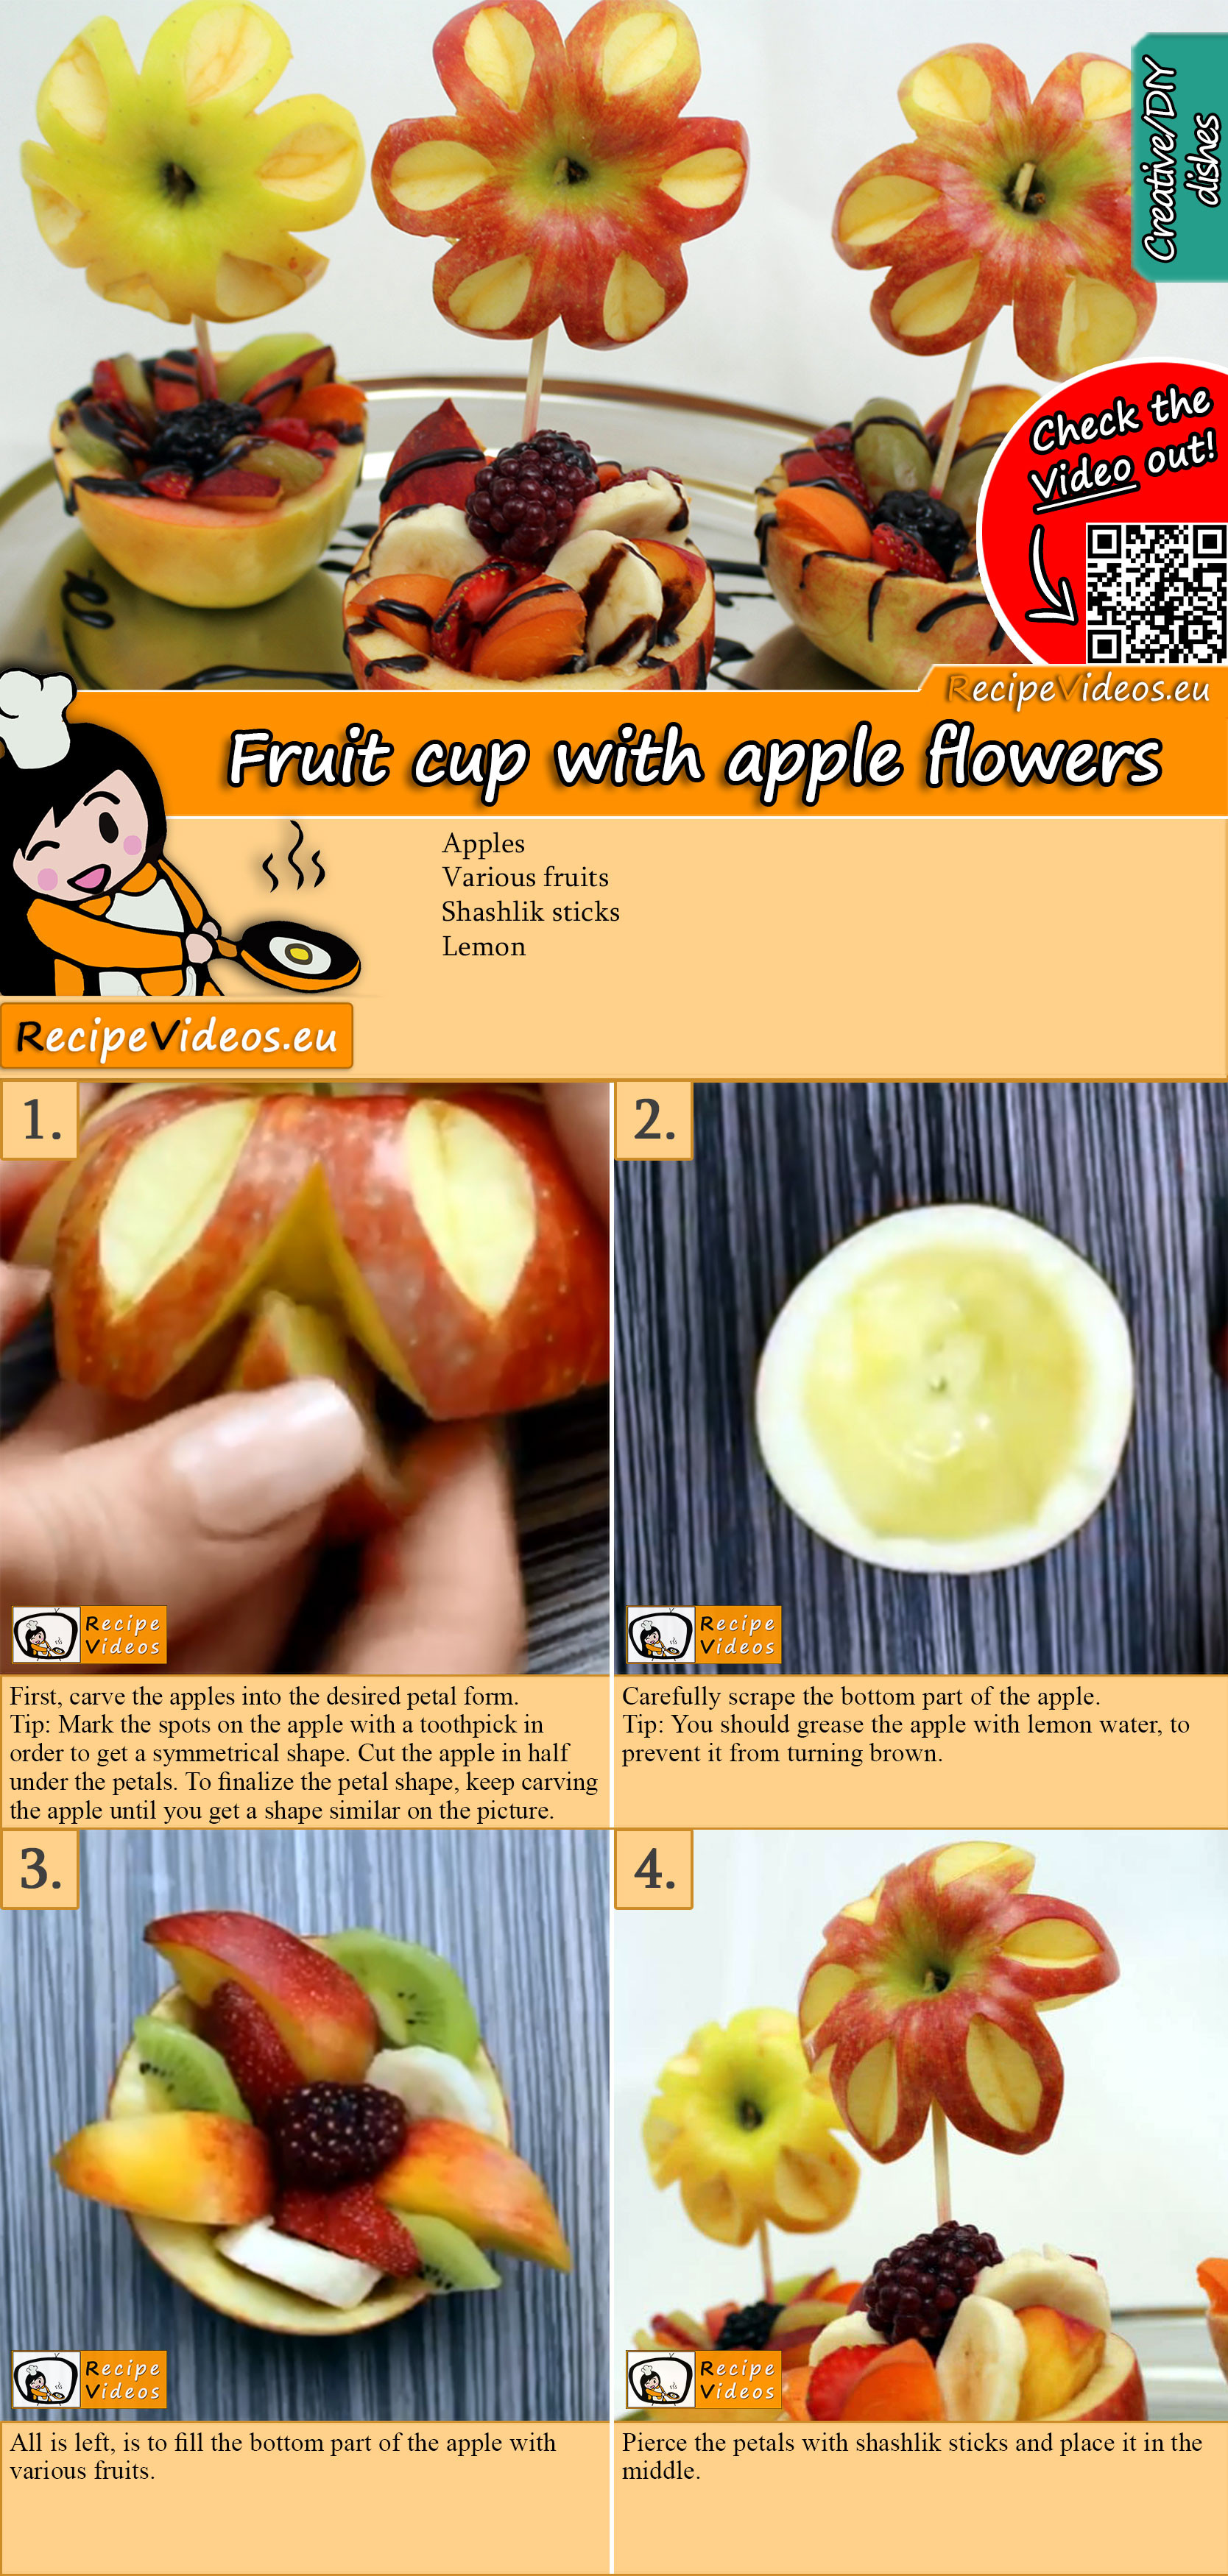 Fruit cup with apple flowers recipe with video